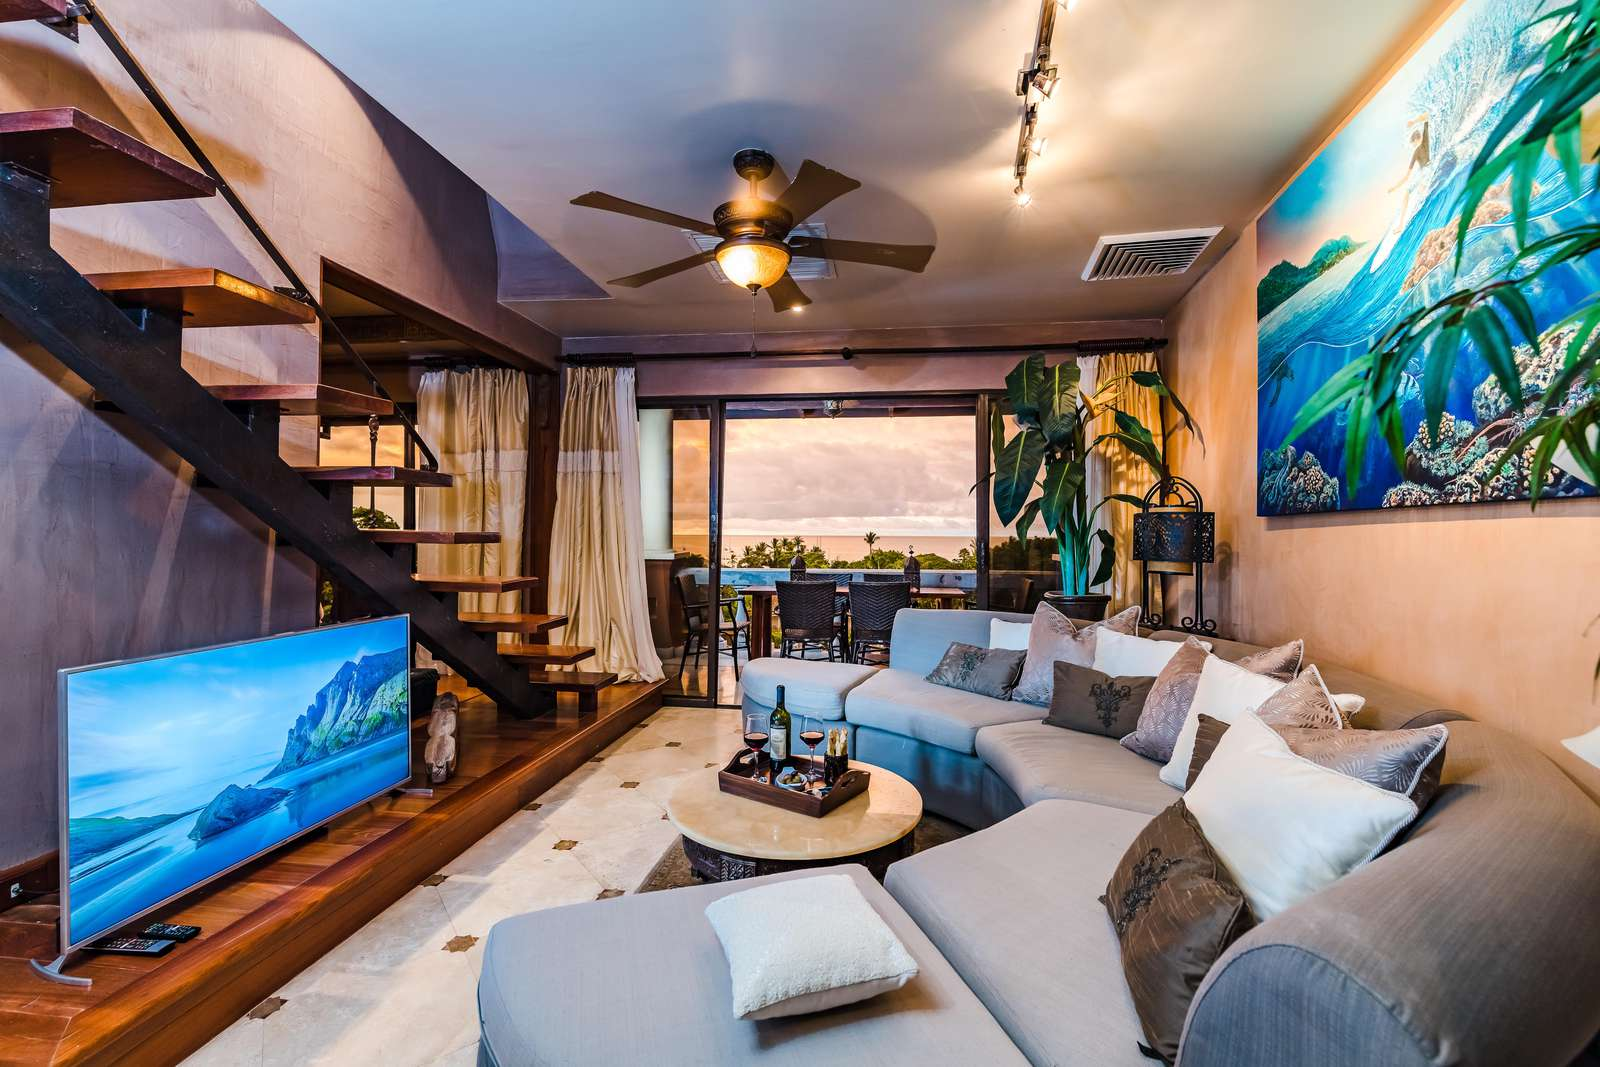 Custom sectional sofa, smart TV, access to balcony and amazing ocean views